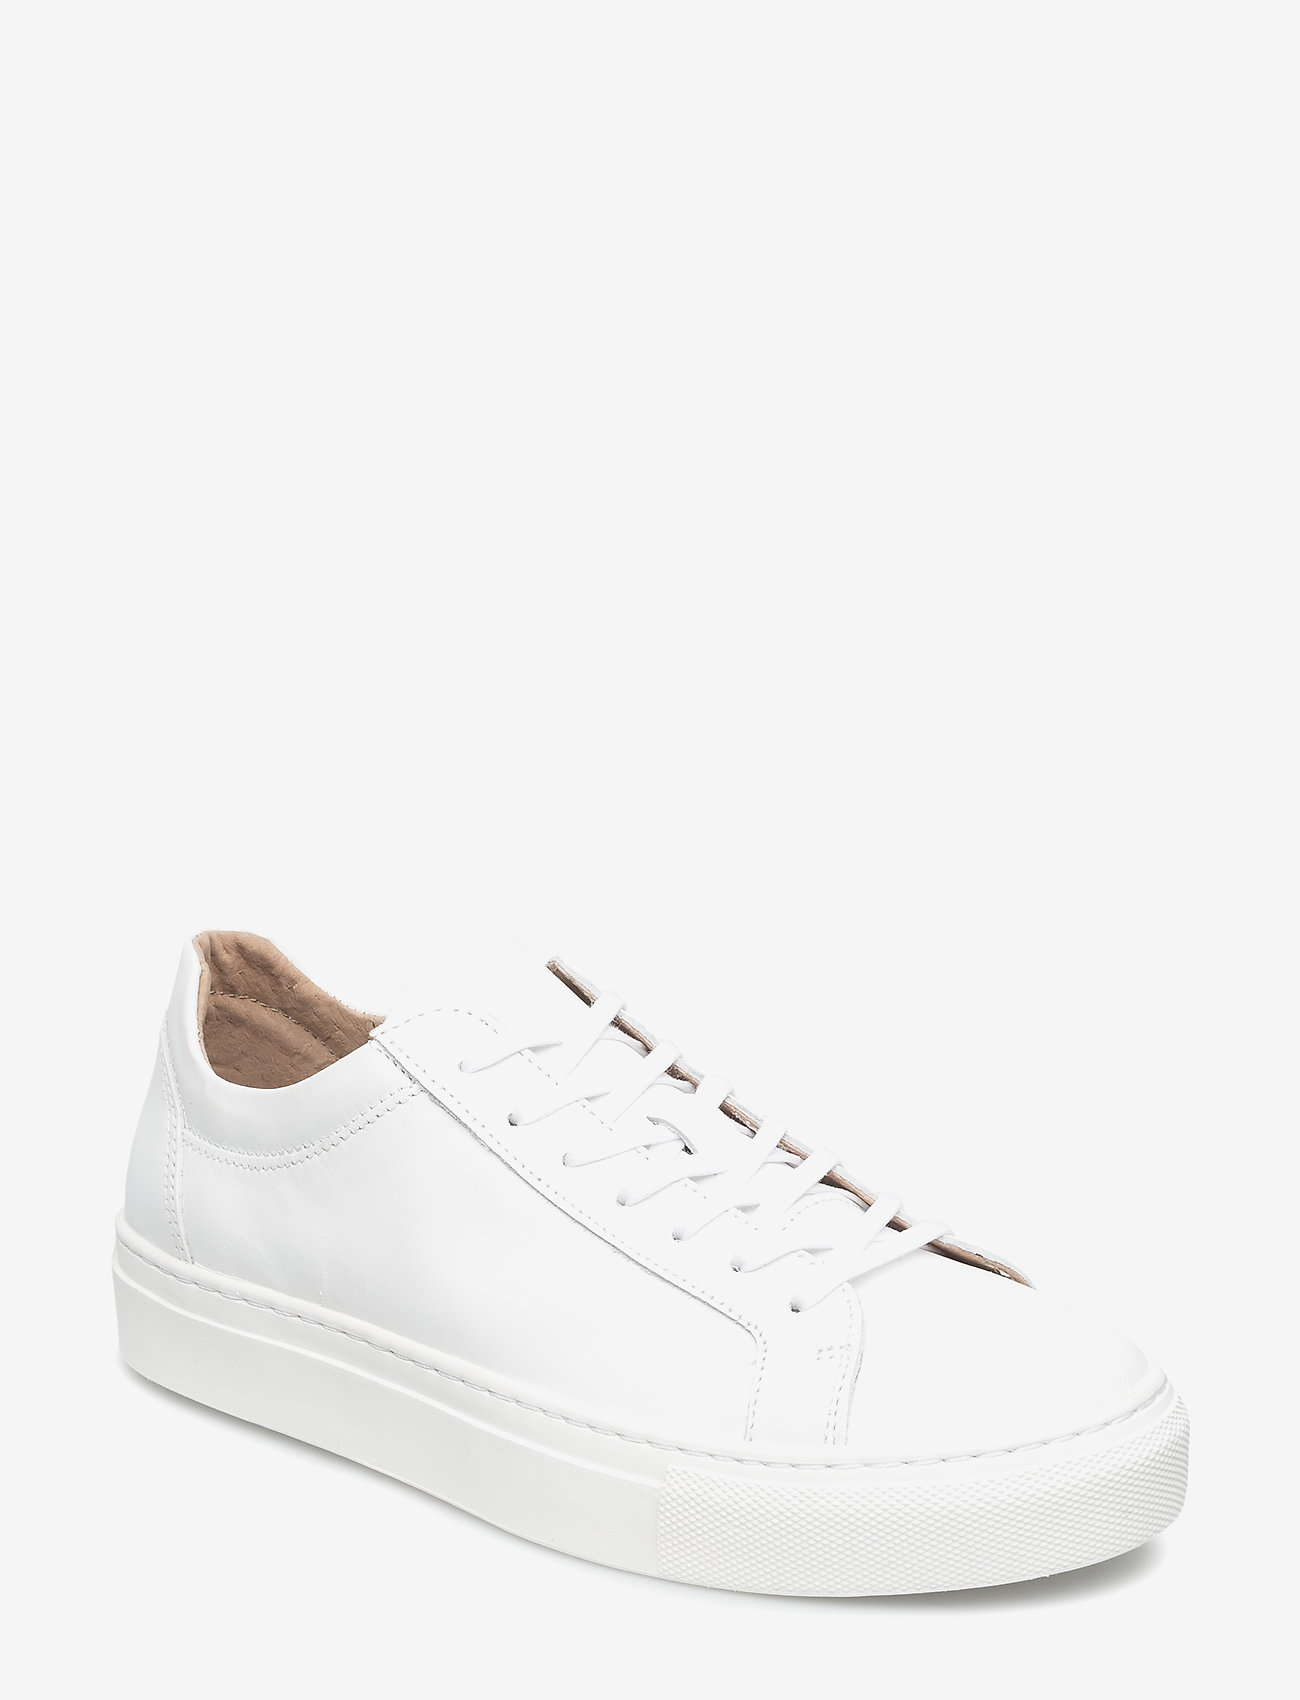 Selected Femme - SFDONNA SNEAKER NOOS - lave sneakers - white - 0